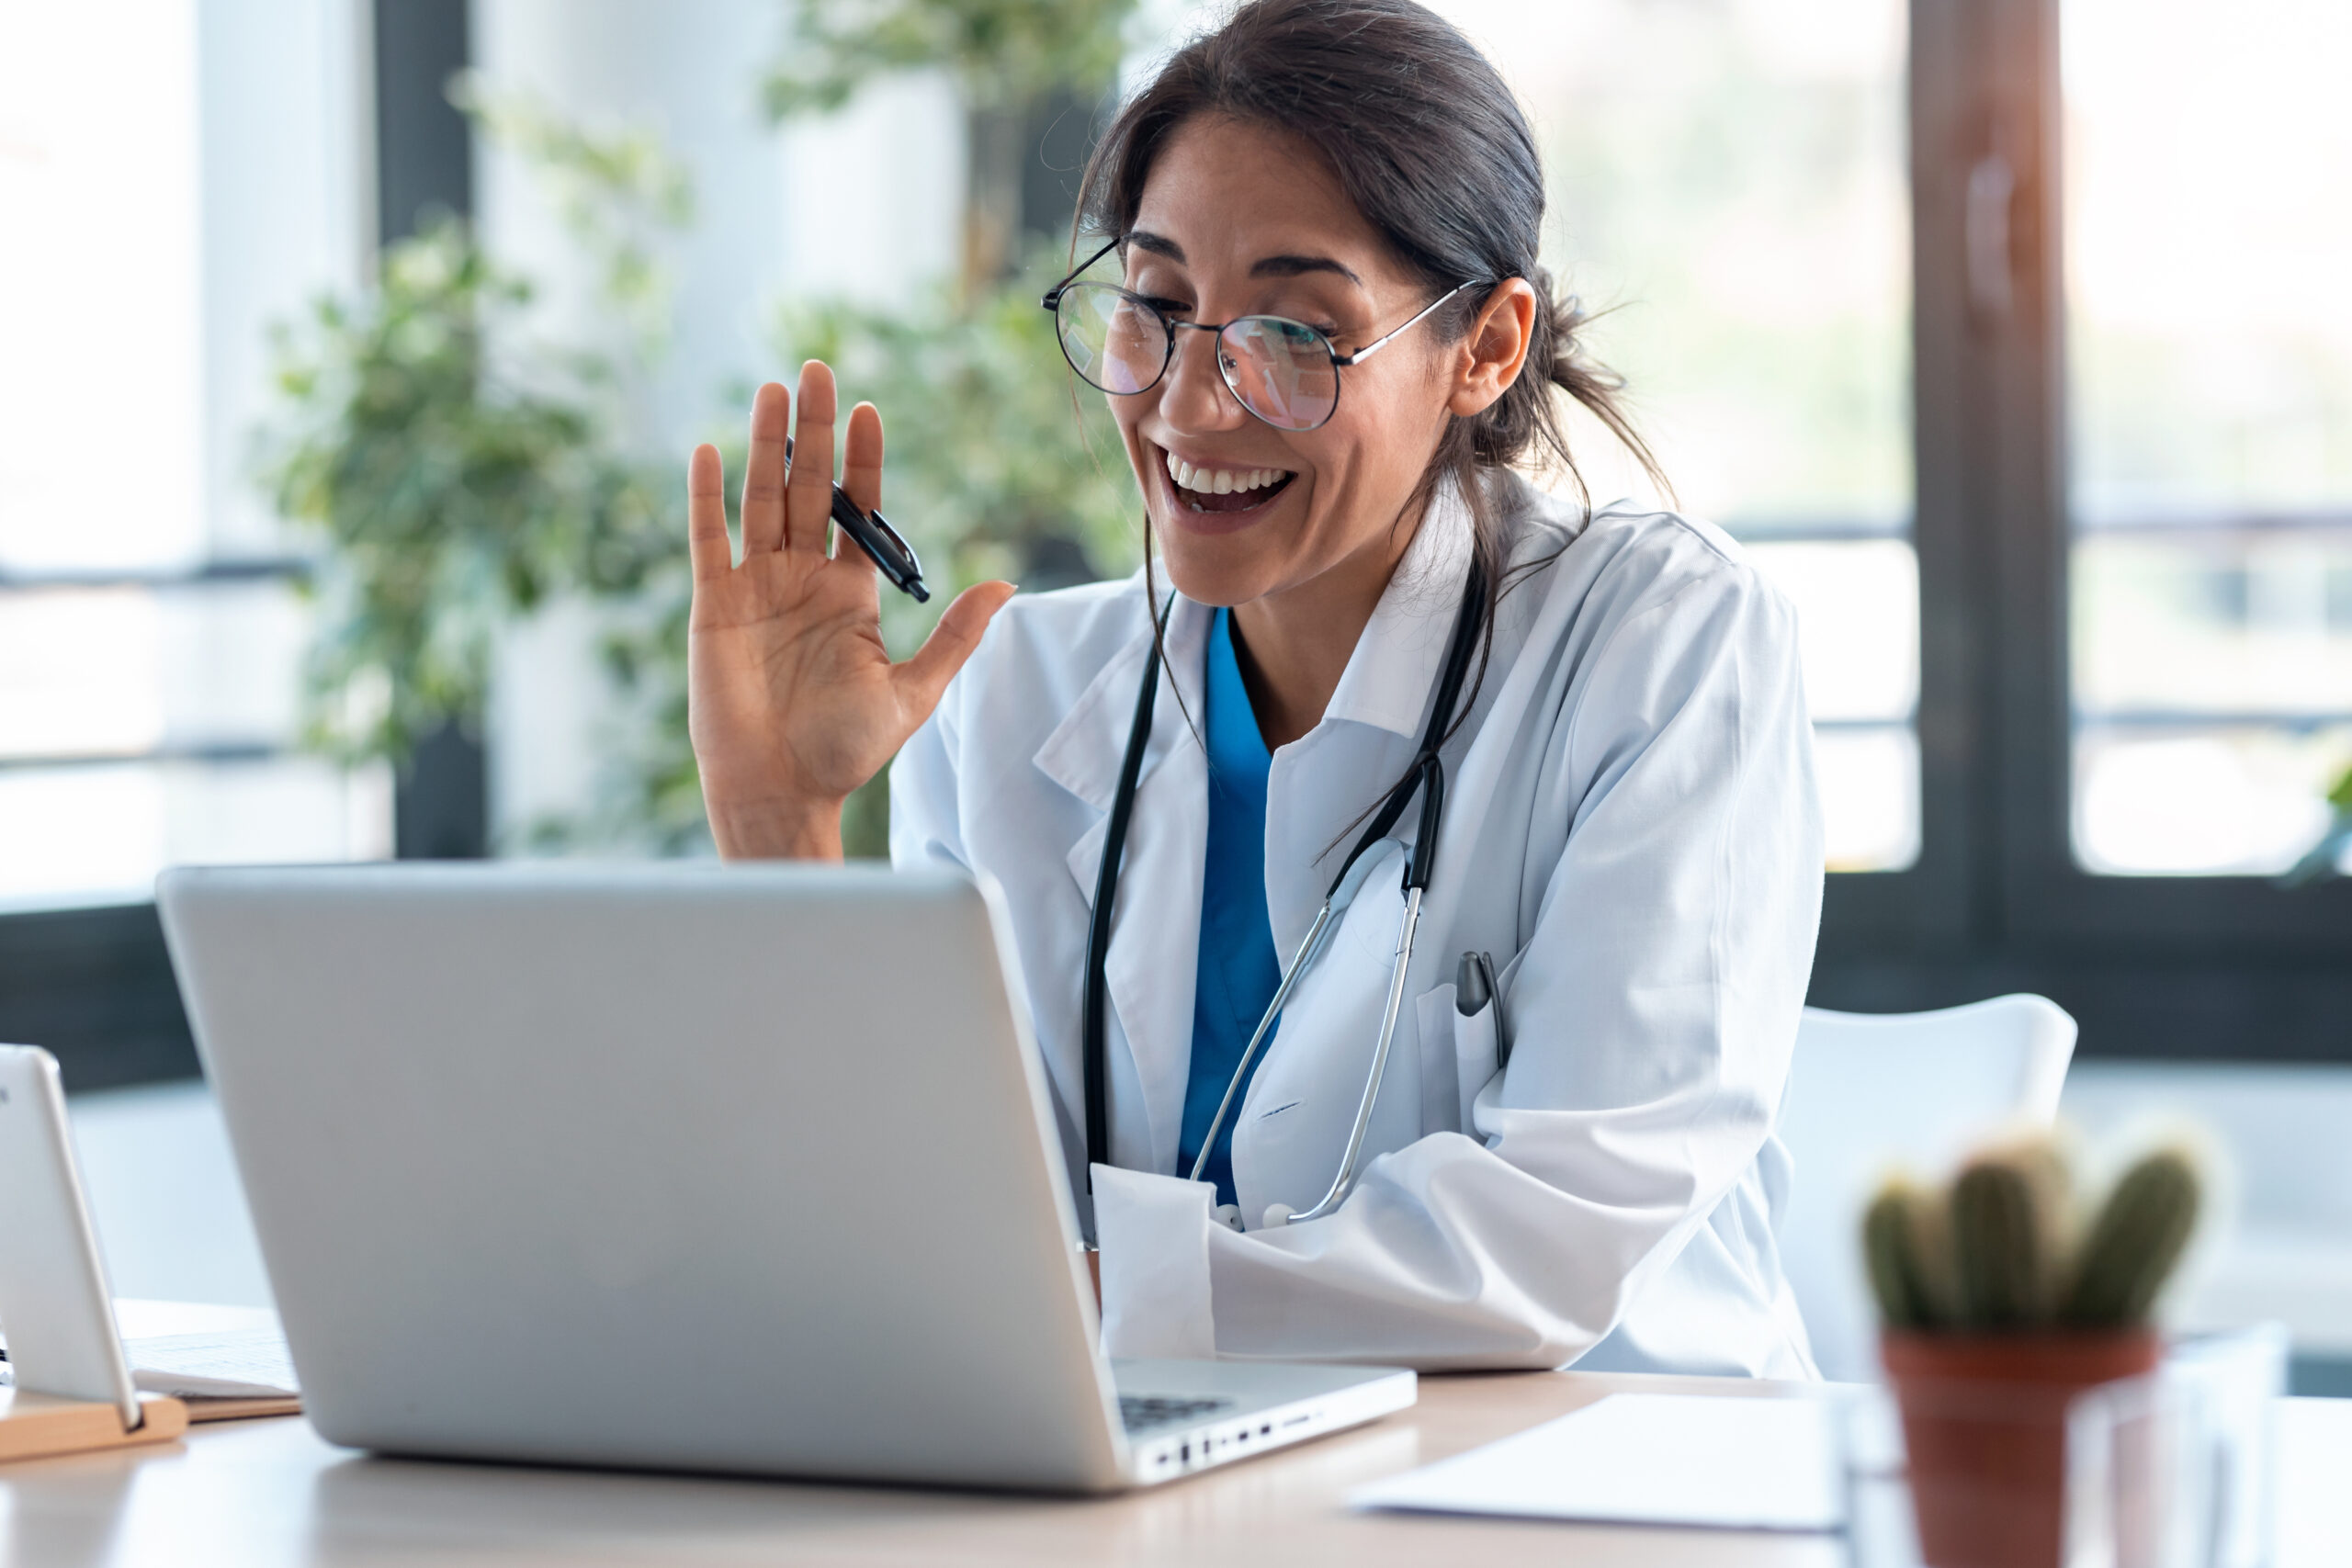 Ways healthcare professionals can improve telehealth appointments for patients, female doctor waving and smiling during telehealth appointment